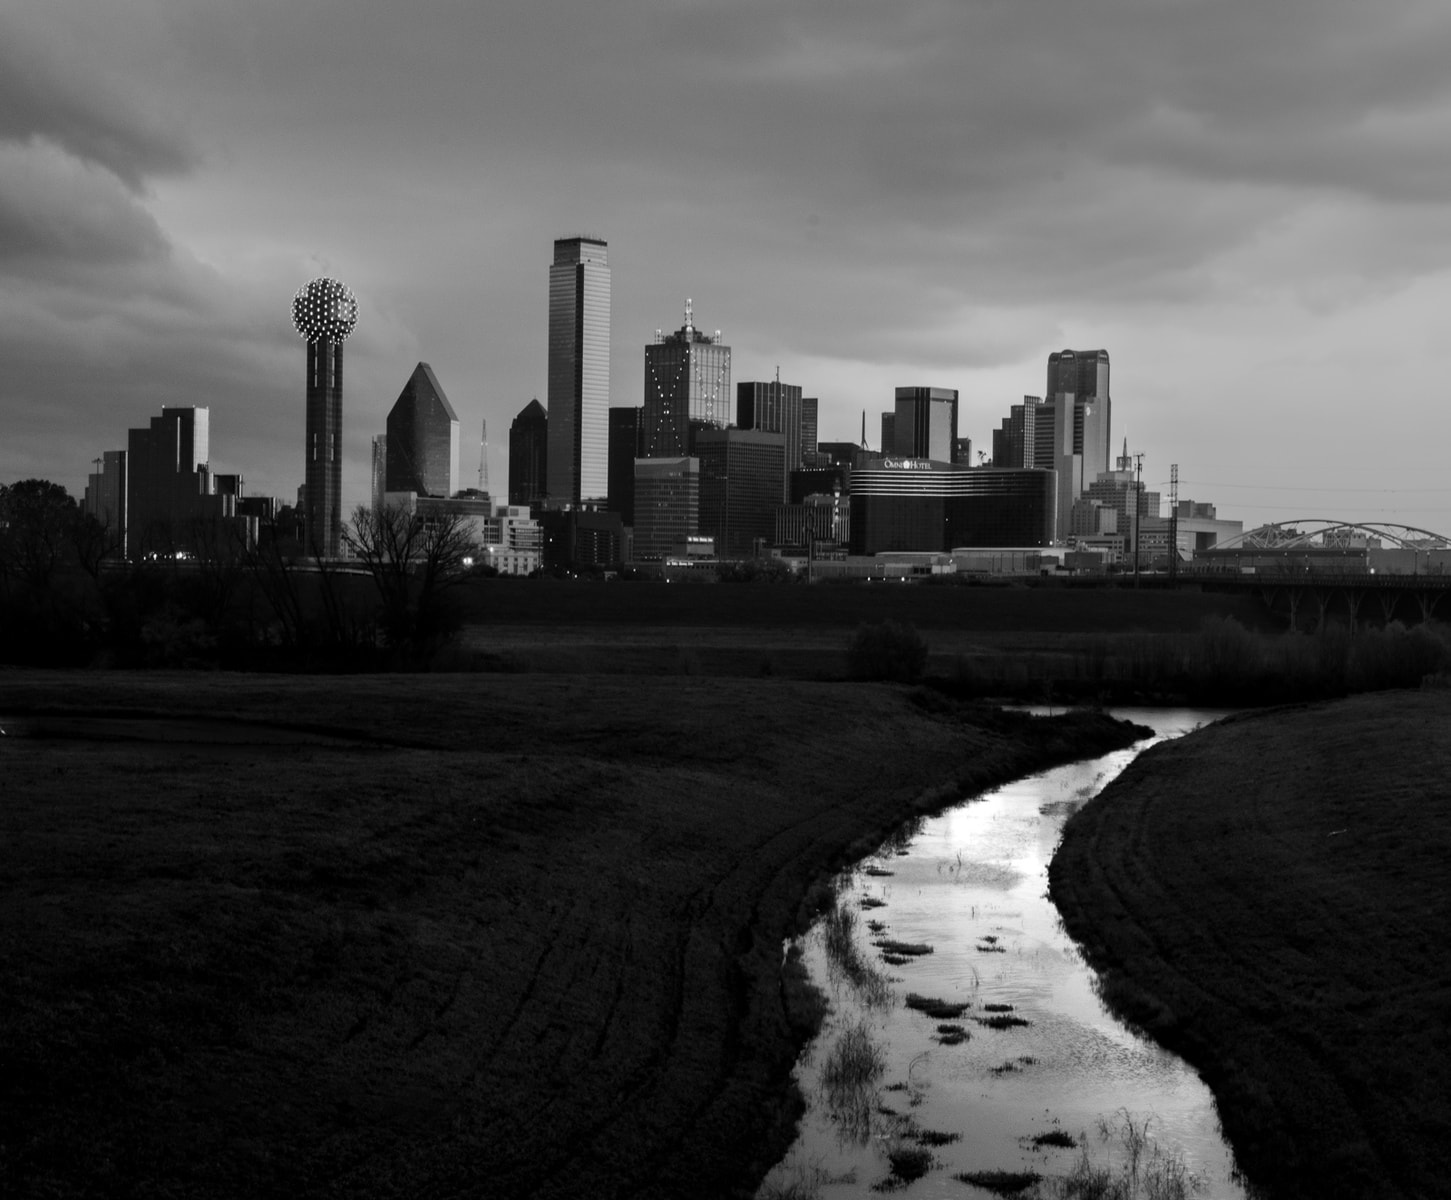 A black and white photo of The Dallas skyline with the trinity river